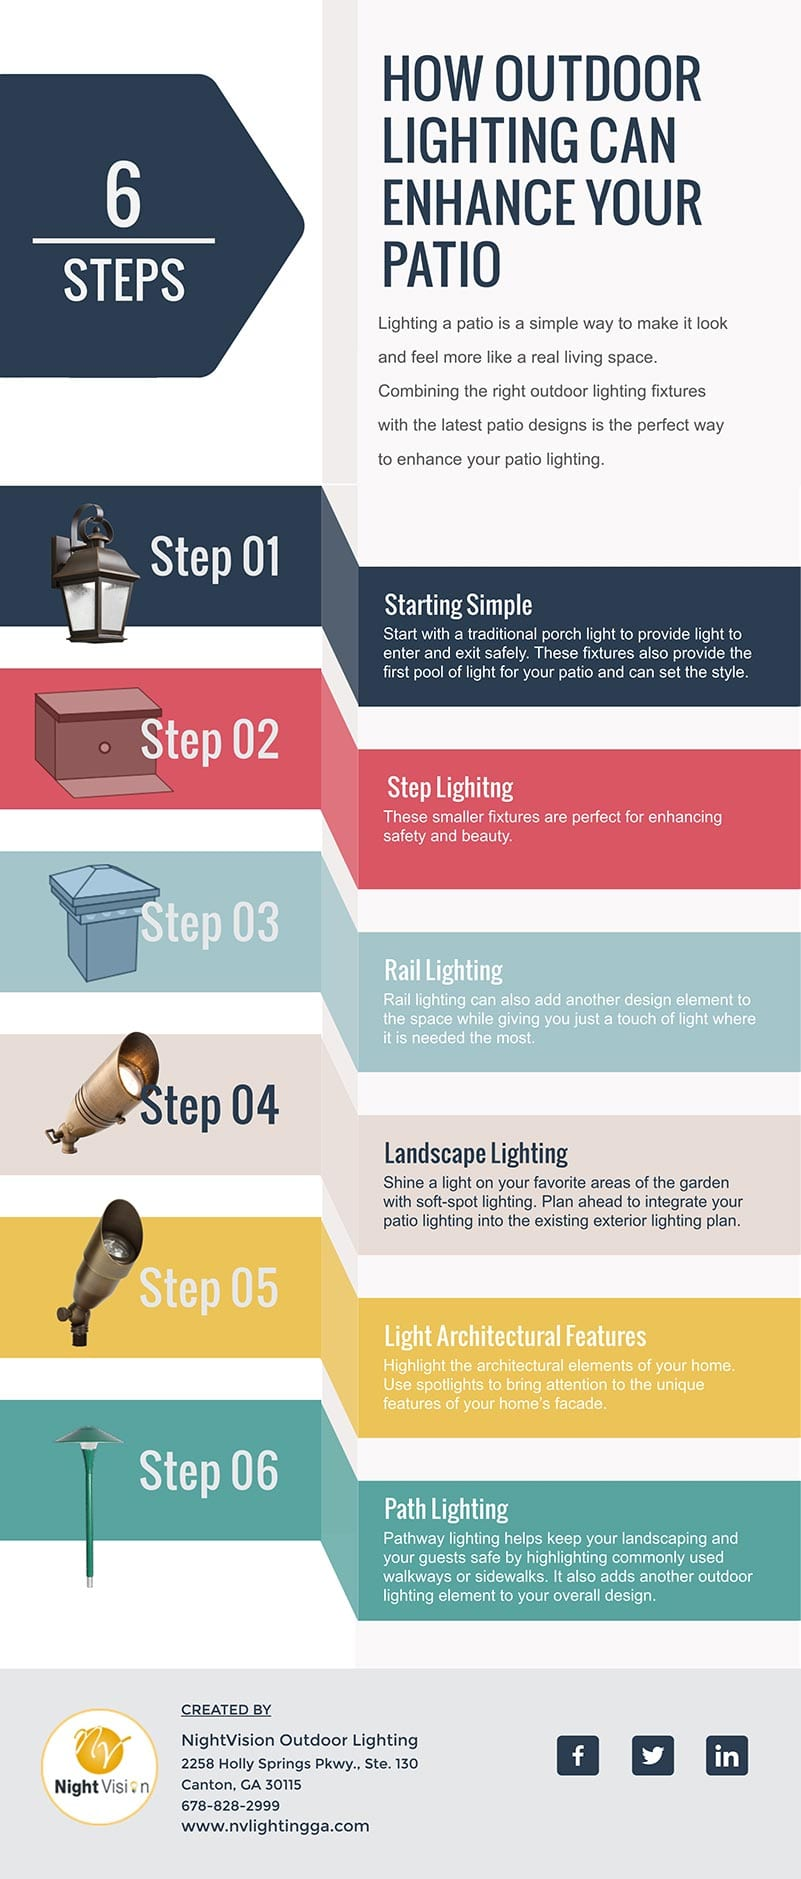 How Outdoor Lighting Can Enhance Your Patio [infographic]